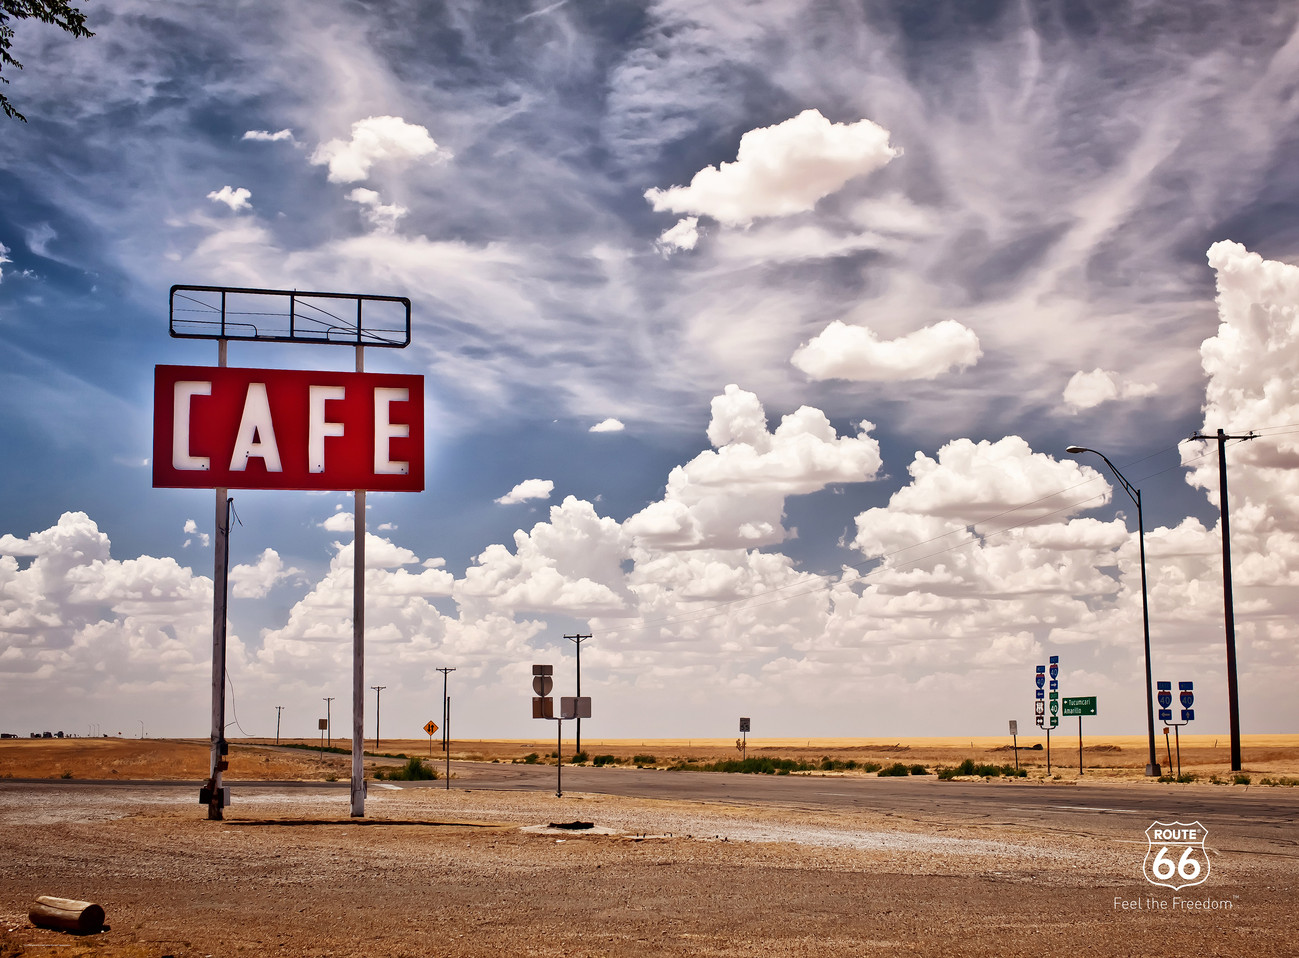 route 66 sky wall mural buy at europosters wall murals sky pixersize com